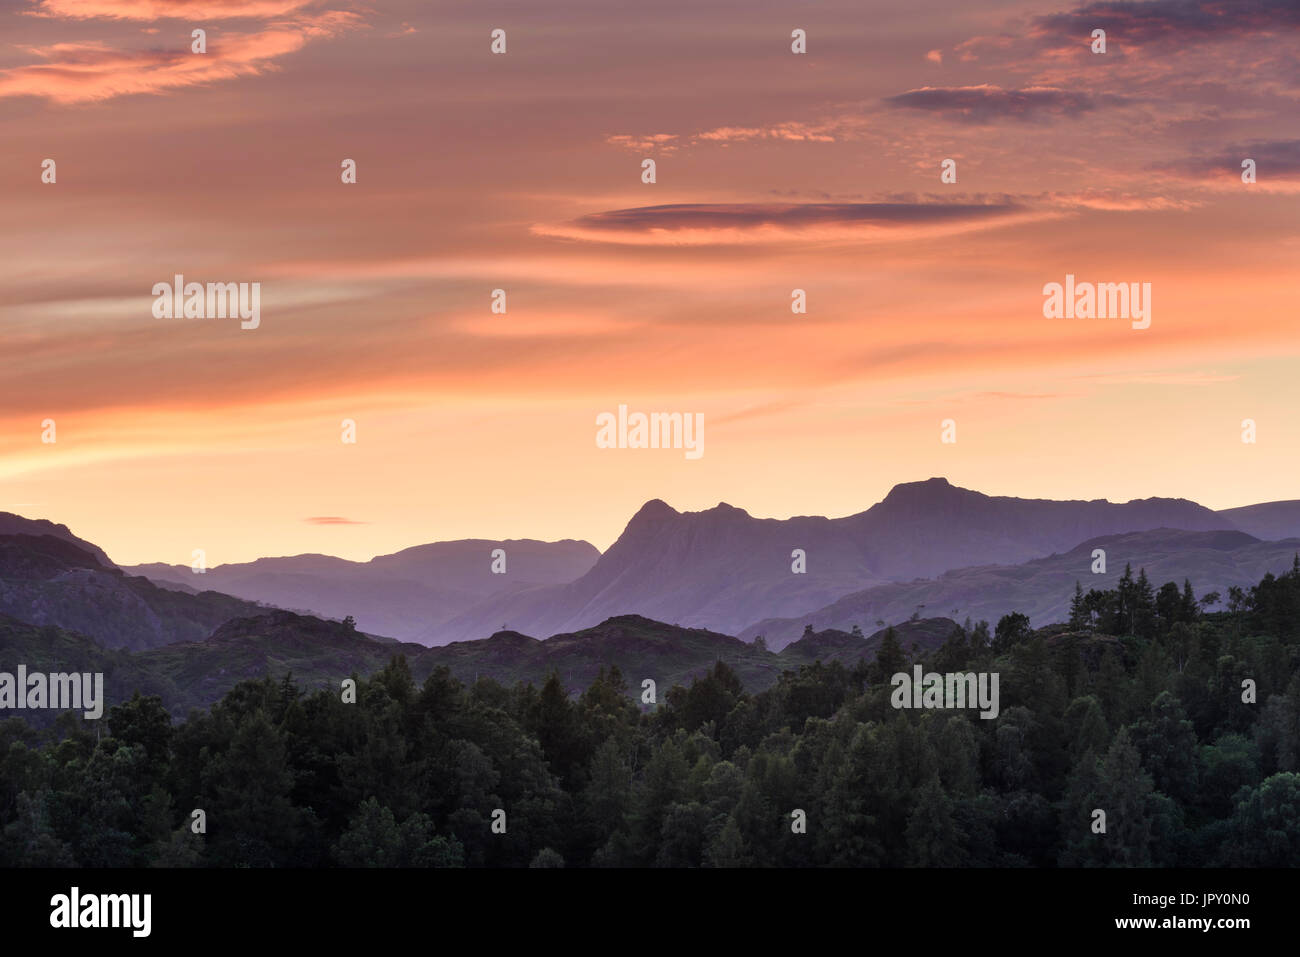 Panorama landscape of Langdale Pikes and Lakeland Fells at dusk  from the hills  above Hawkshead near Tarn Hows in the English Lake District - Stock Image